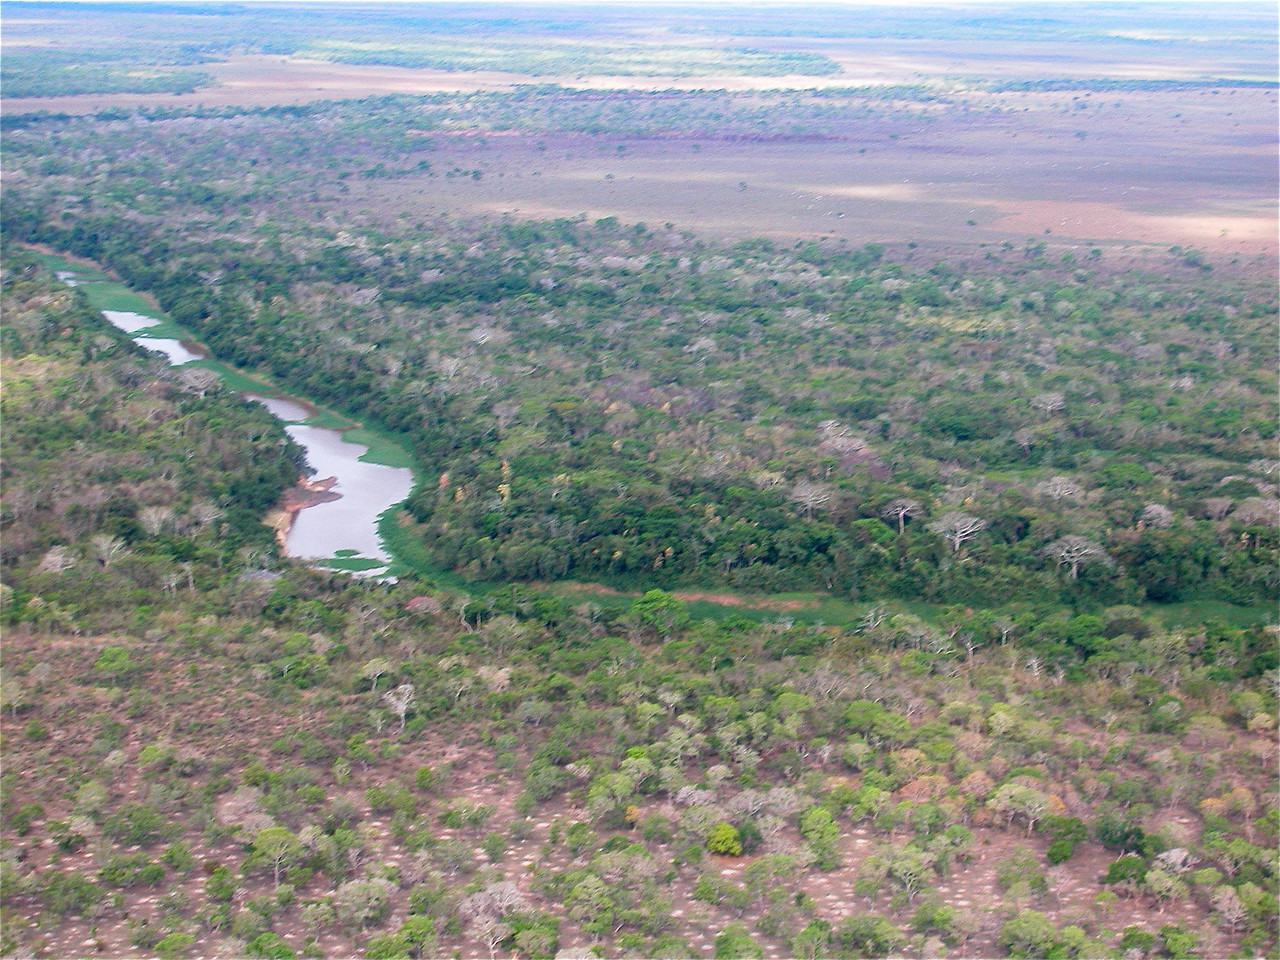 View from a small Cessna flying over the Beni region of northern Bolivia, a mixture of wilderness and cattle ranches. The white spots on the ground in the foreground are termite mounds.